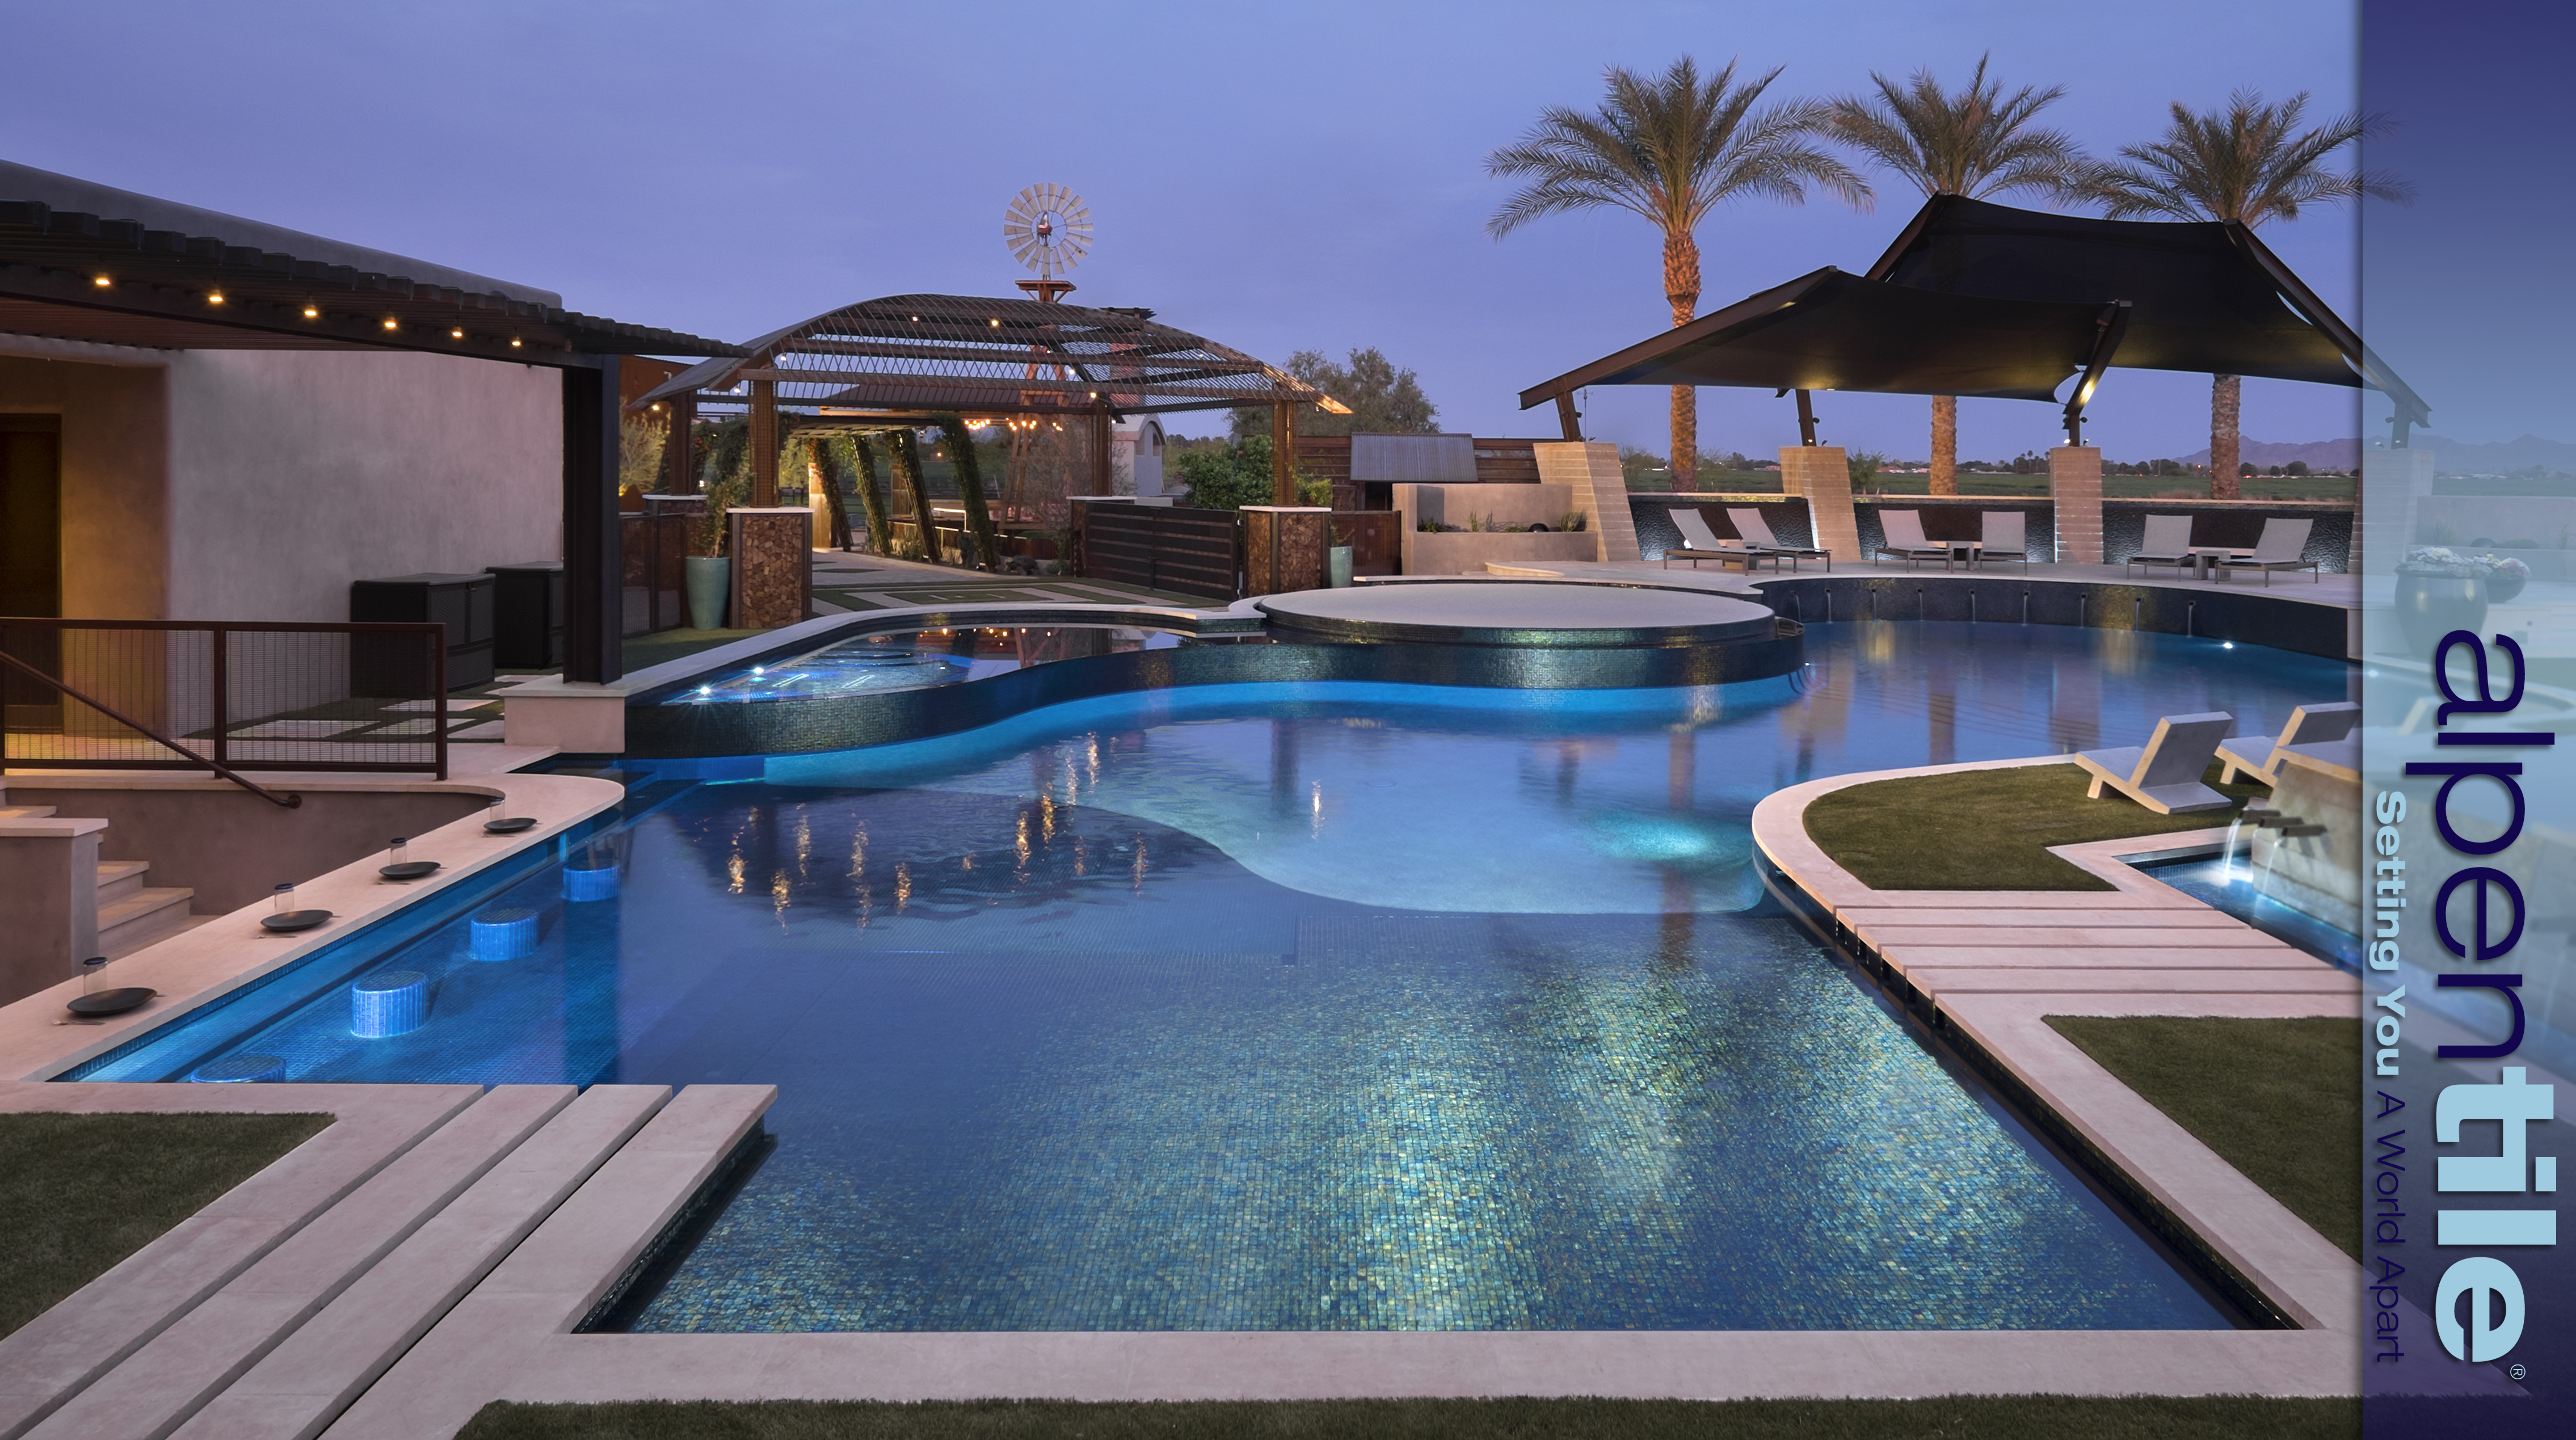 All the right curves alpentile glass tile pools and spas for Glass swimming pool